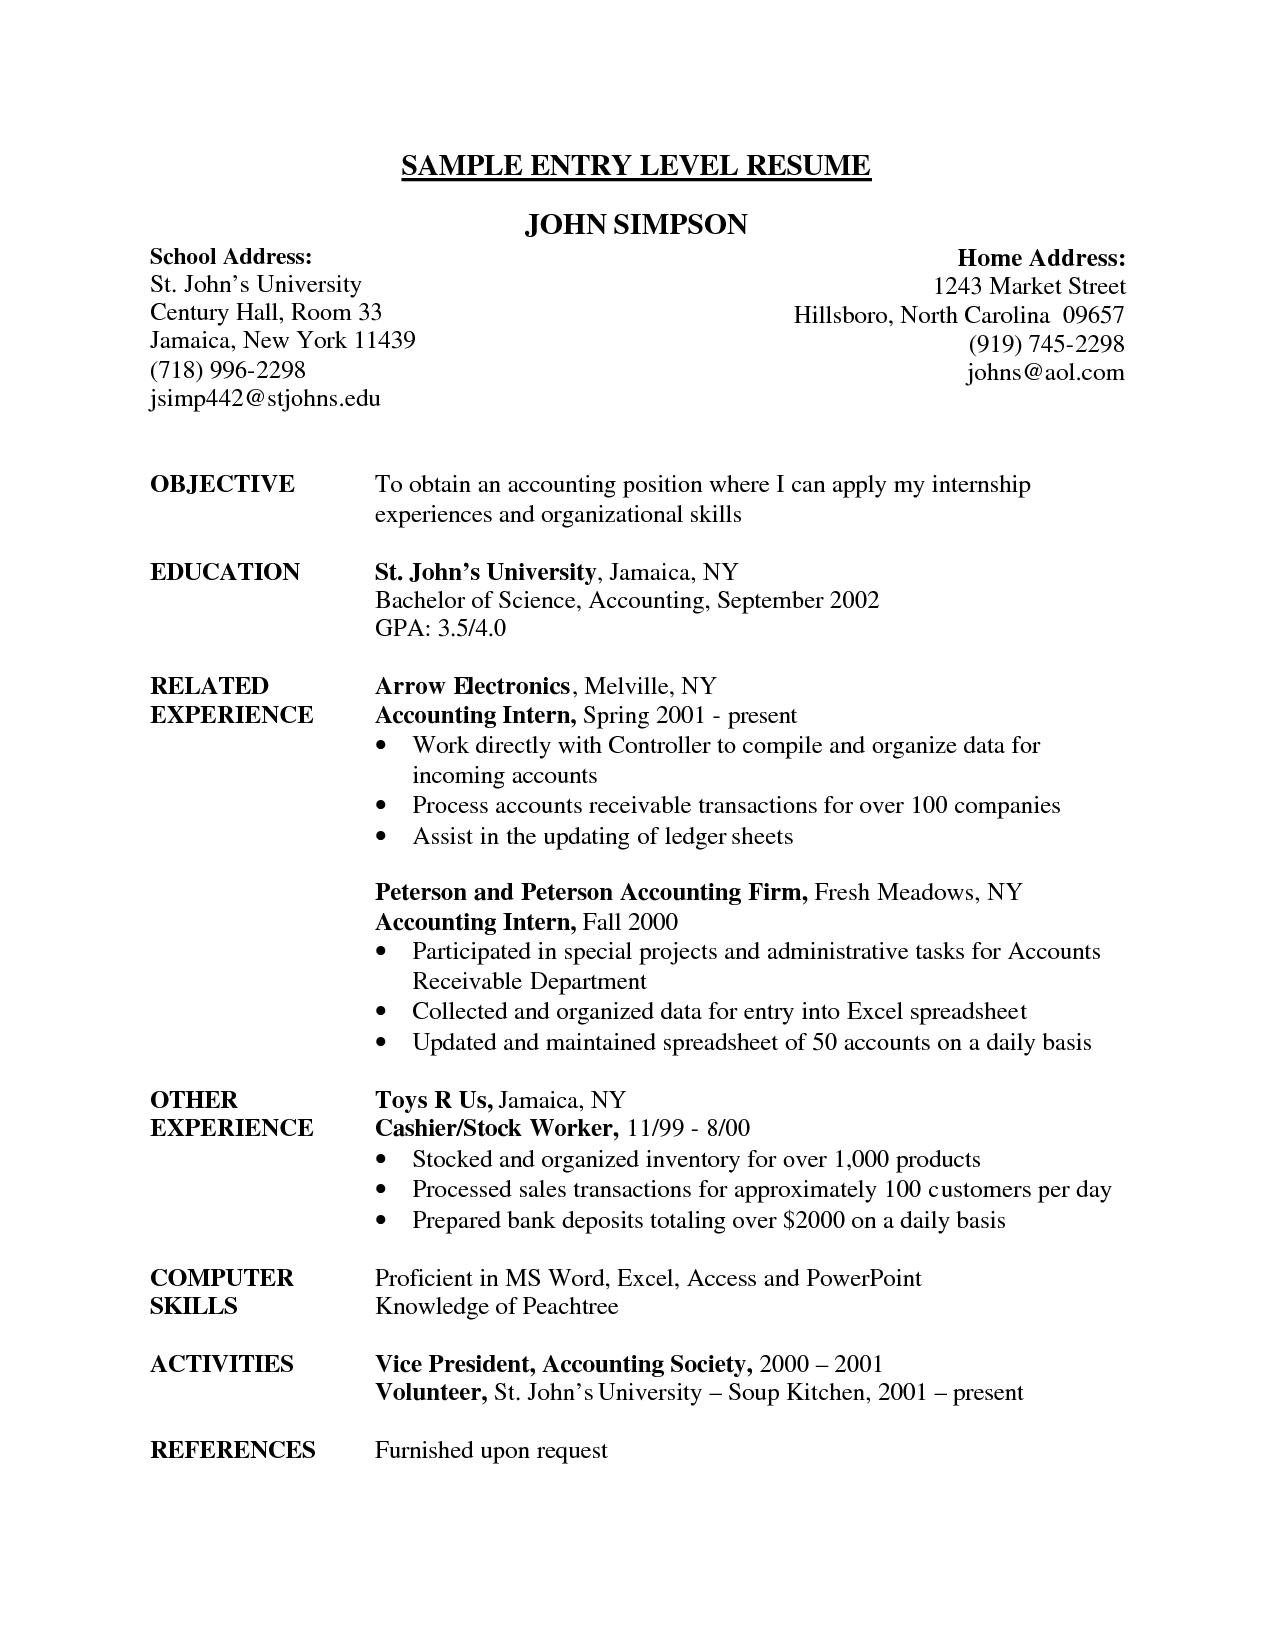 Profile Examples Resume Resume Help Personal Profile Example How Cna Resume  Objective Sample  Resume Template Education